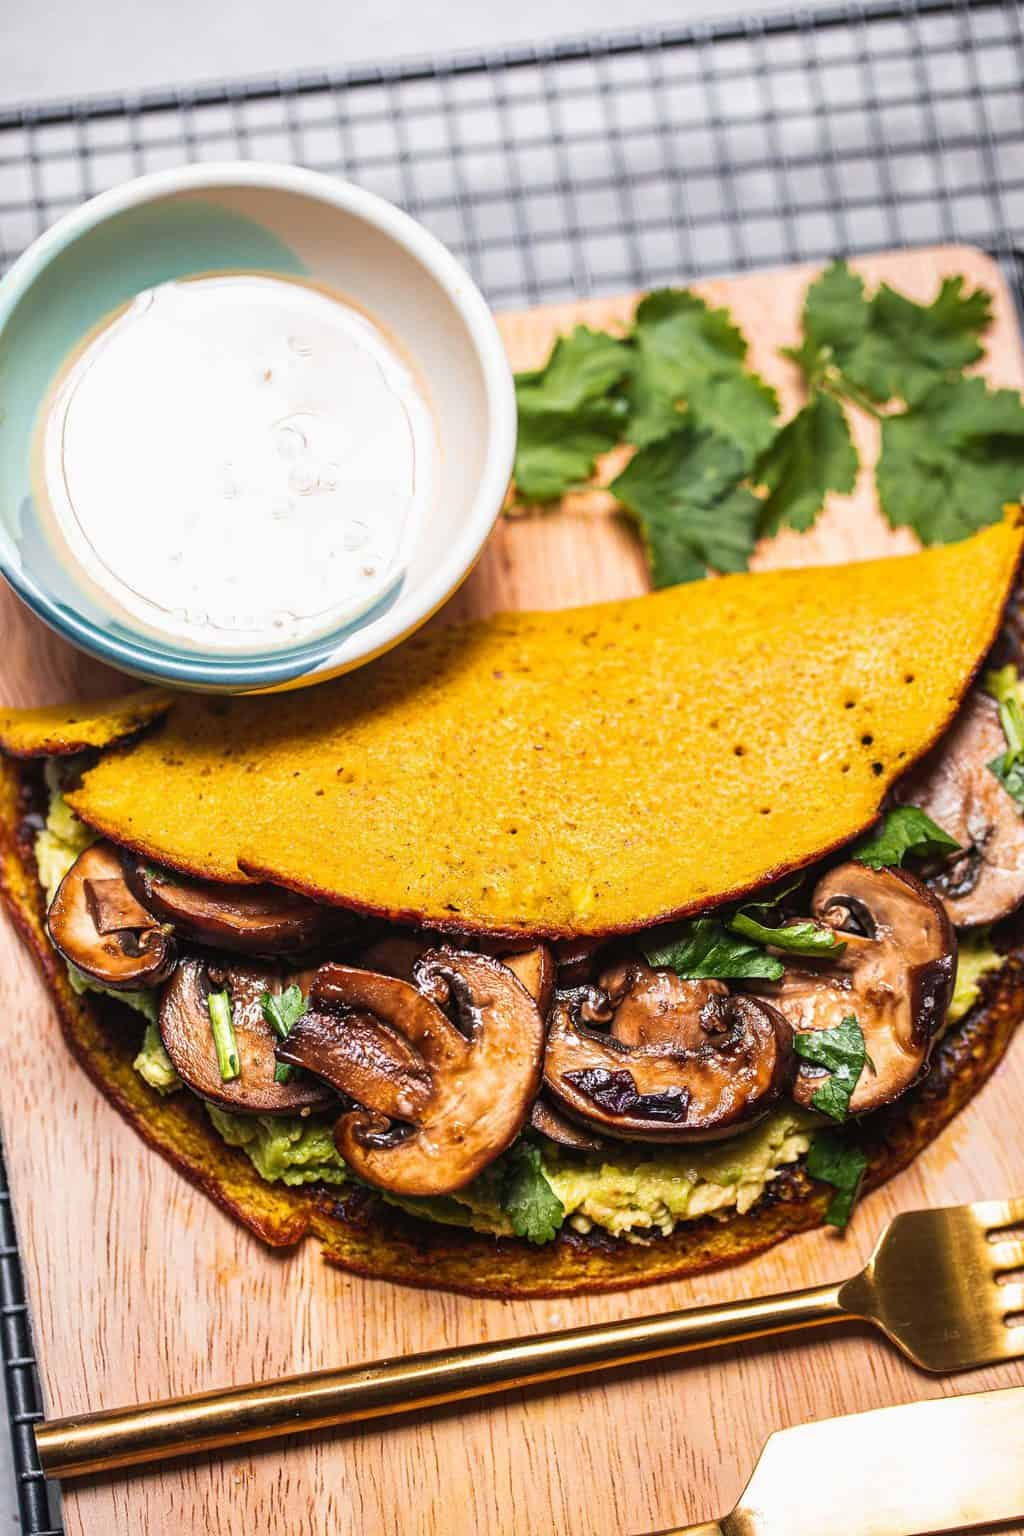 Chickpea omelette with mushrooms and avocado